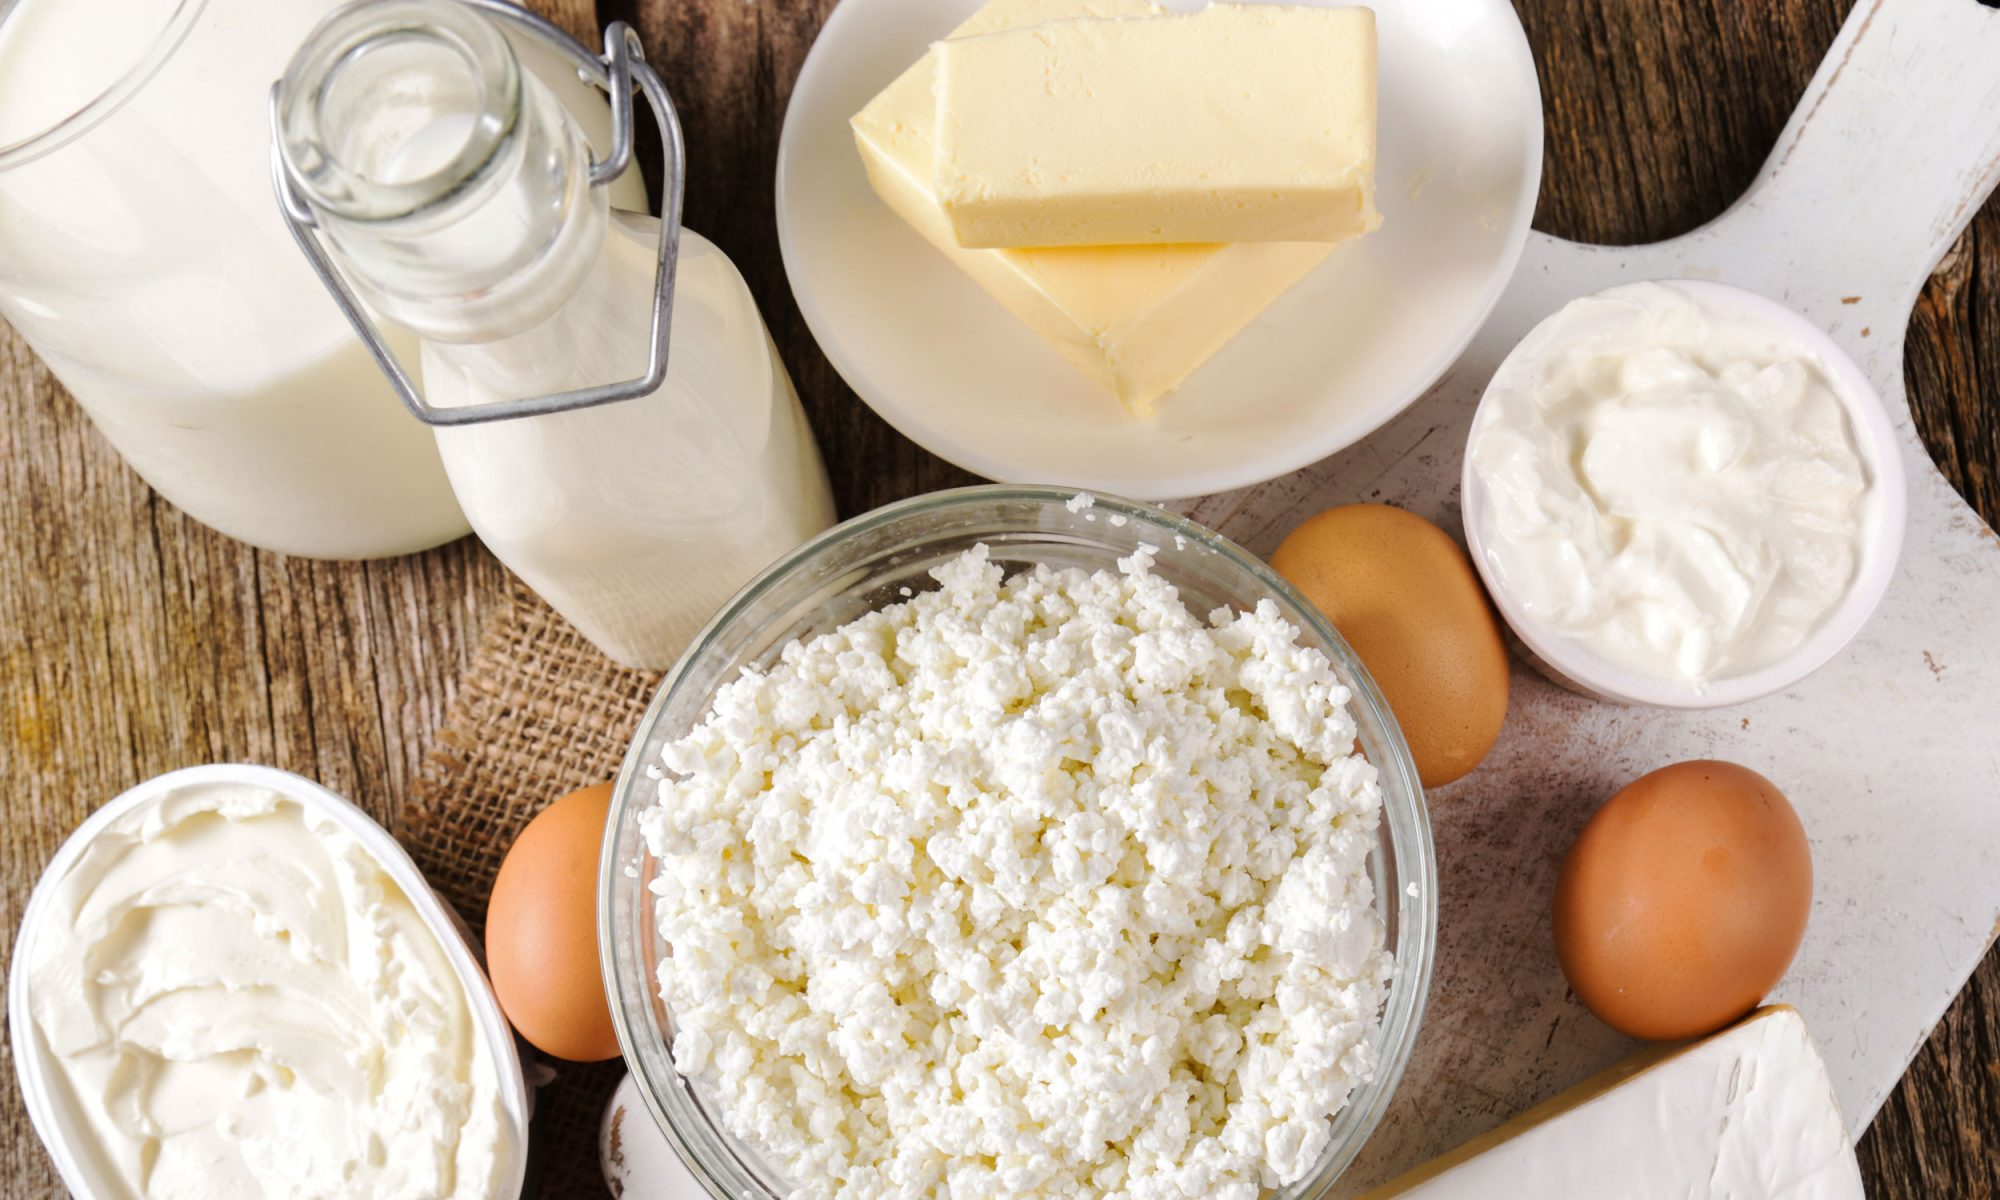 EC: A Brief Guide to Unfamiliar Dairy Products You Should Know